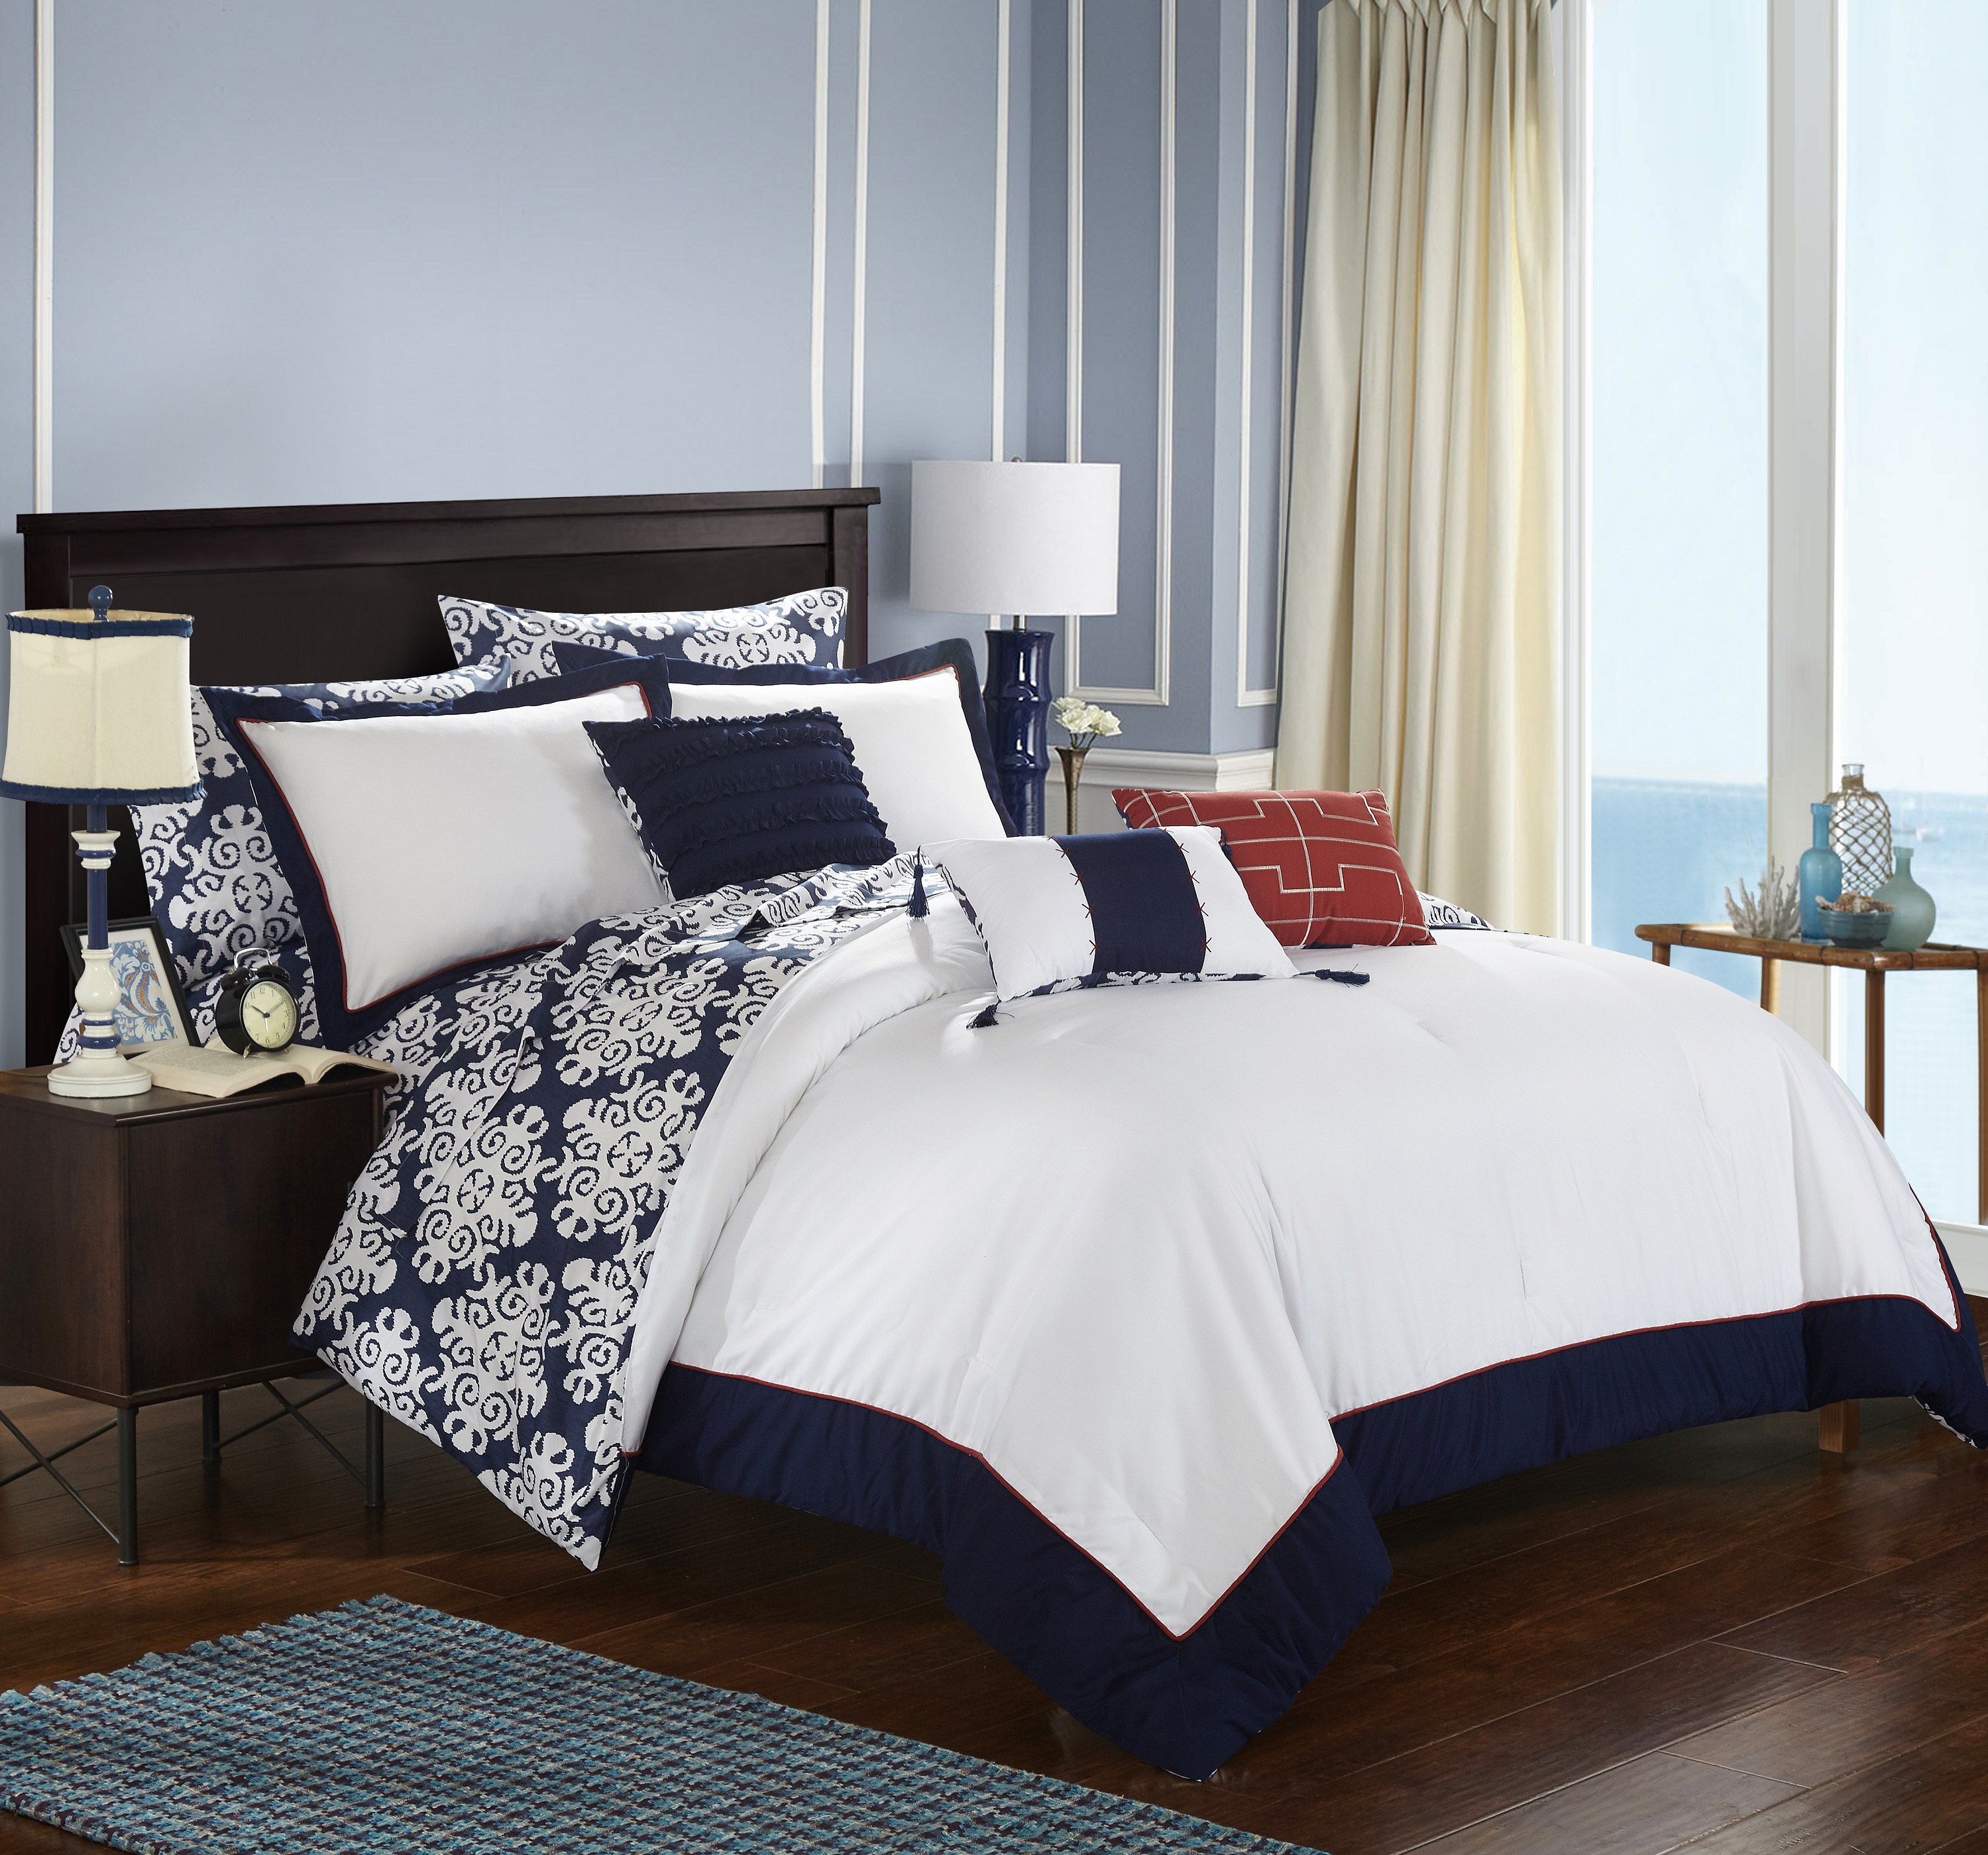 Chic Home 8-Piece Lalita Navy Blue and White REVERSIBLE Medallion printed PLUSH Hotel Collection Twin Bed In a Bag Comforter Set Navy With sheet set